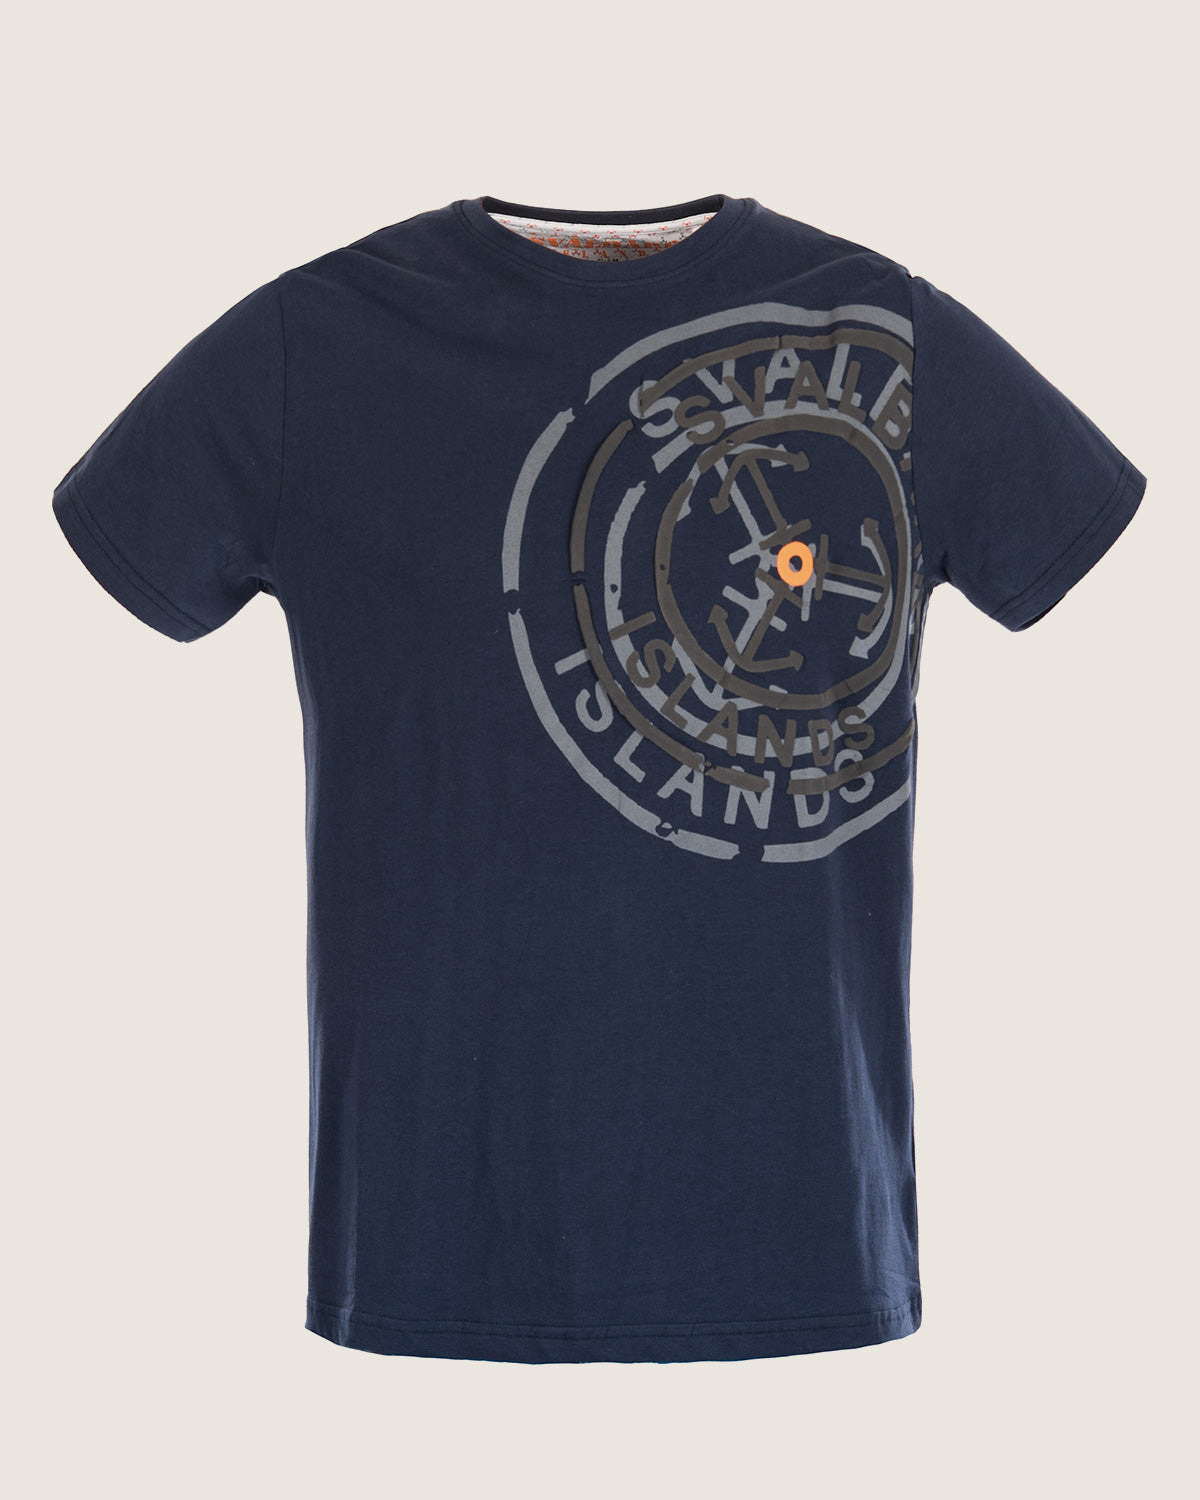 T-shirt Umberto - Navy Blue